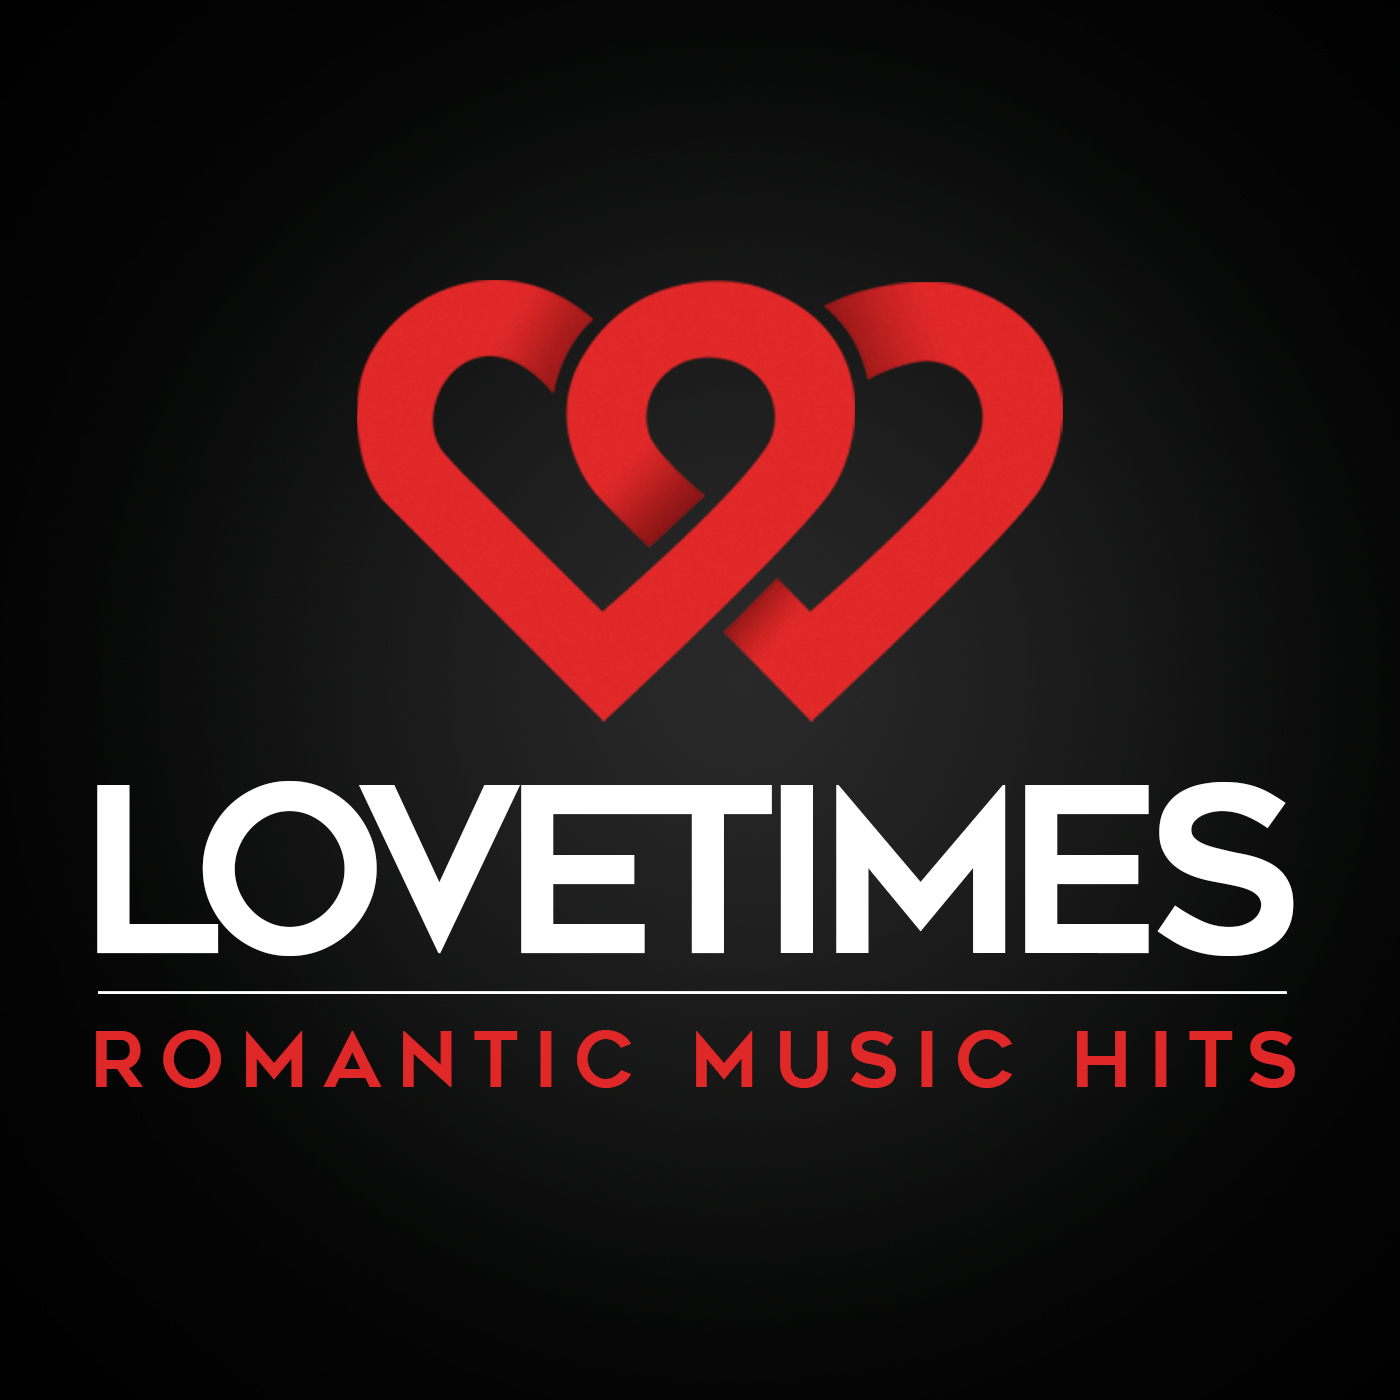 LOVETIMES | Romantic Music Hits (48 AAC+)